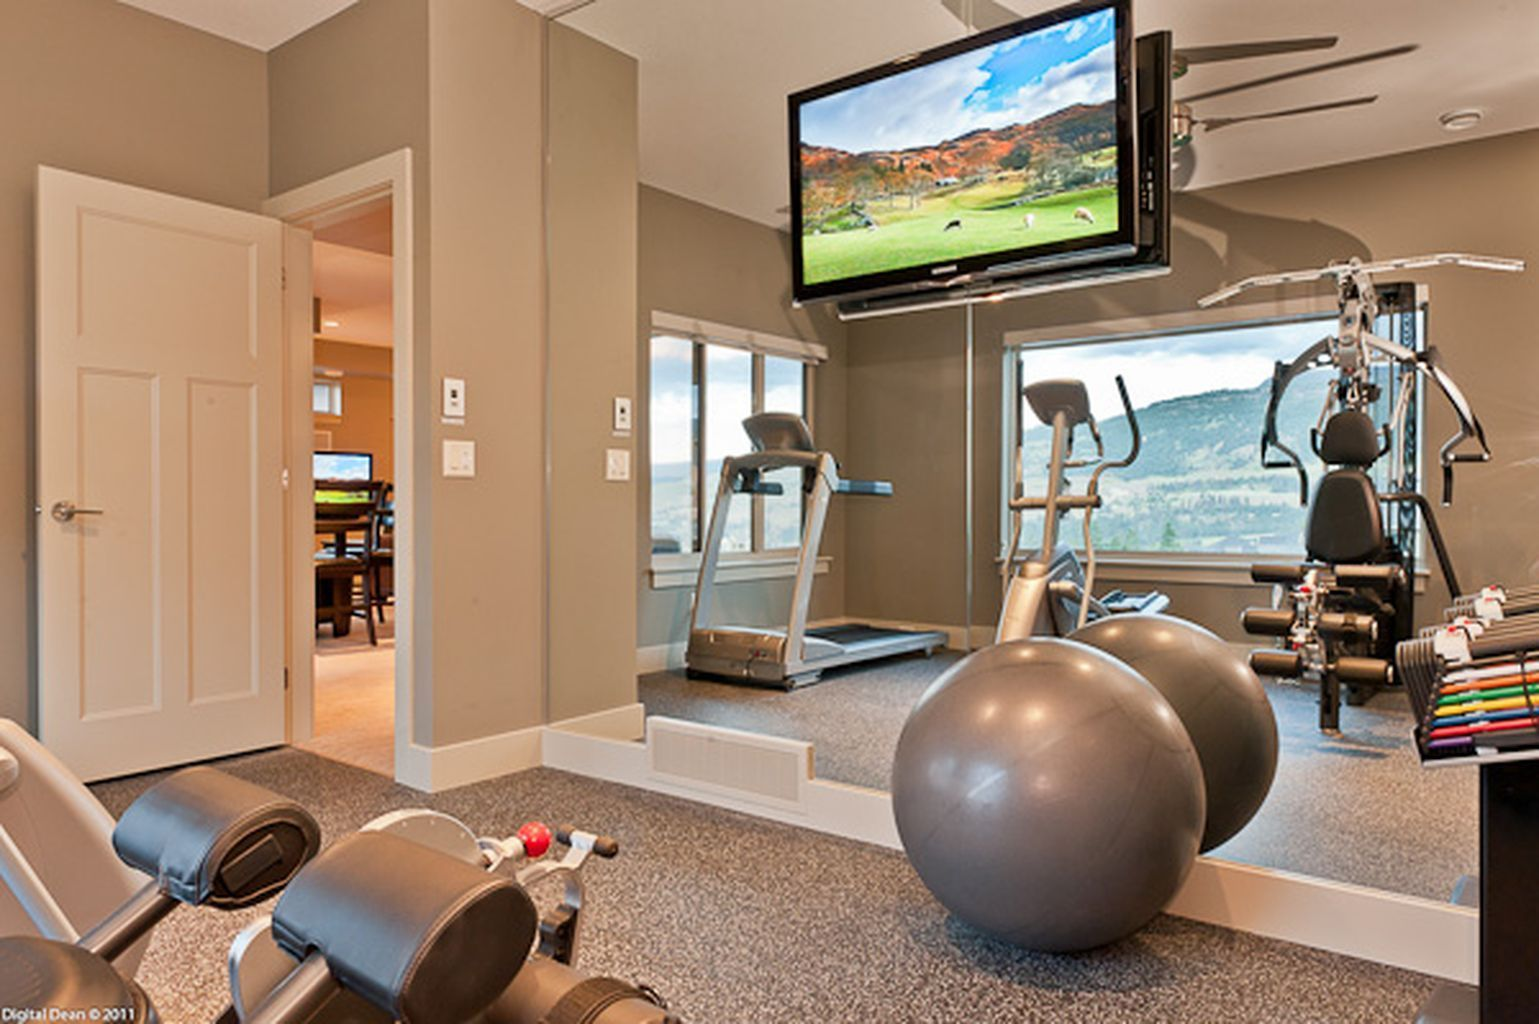 25 Home Gym Ideas 15 Workout Room Home Gym Room At Home